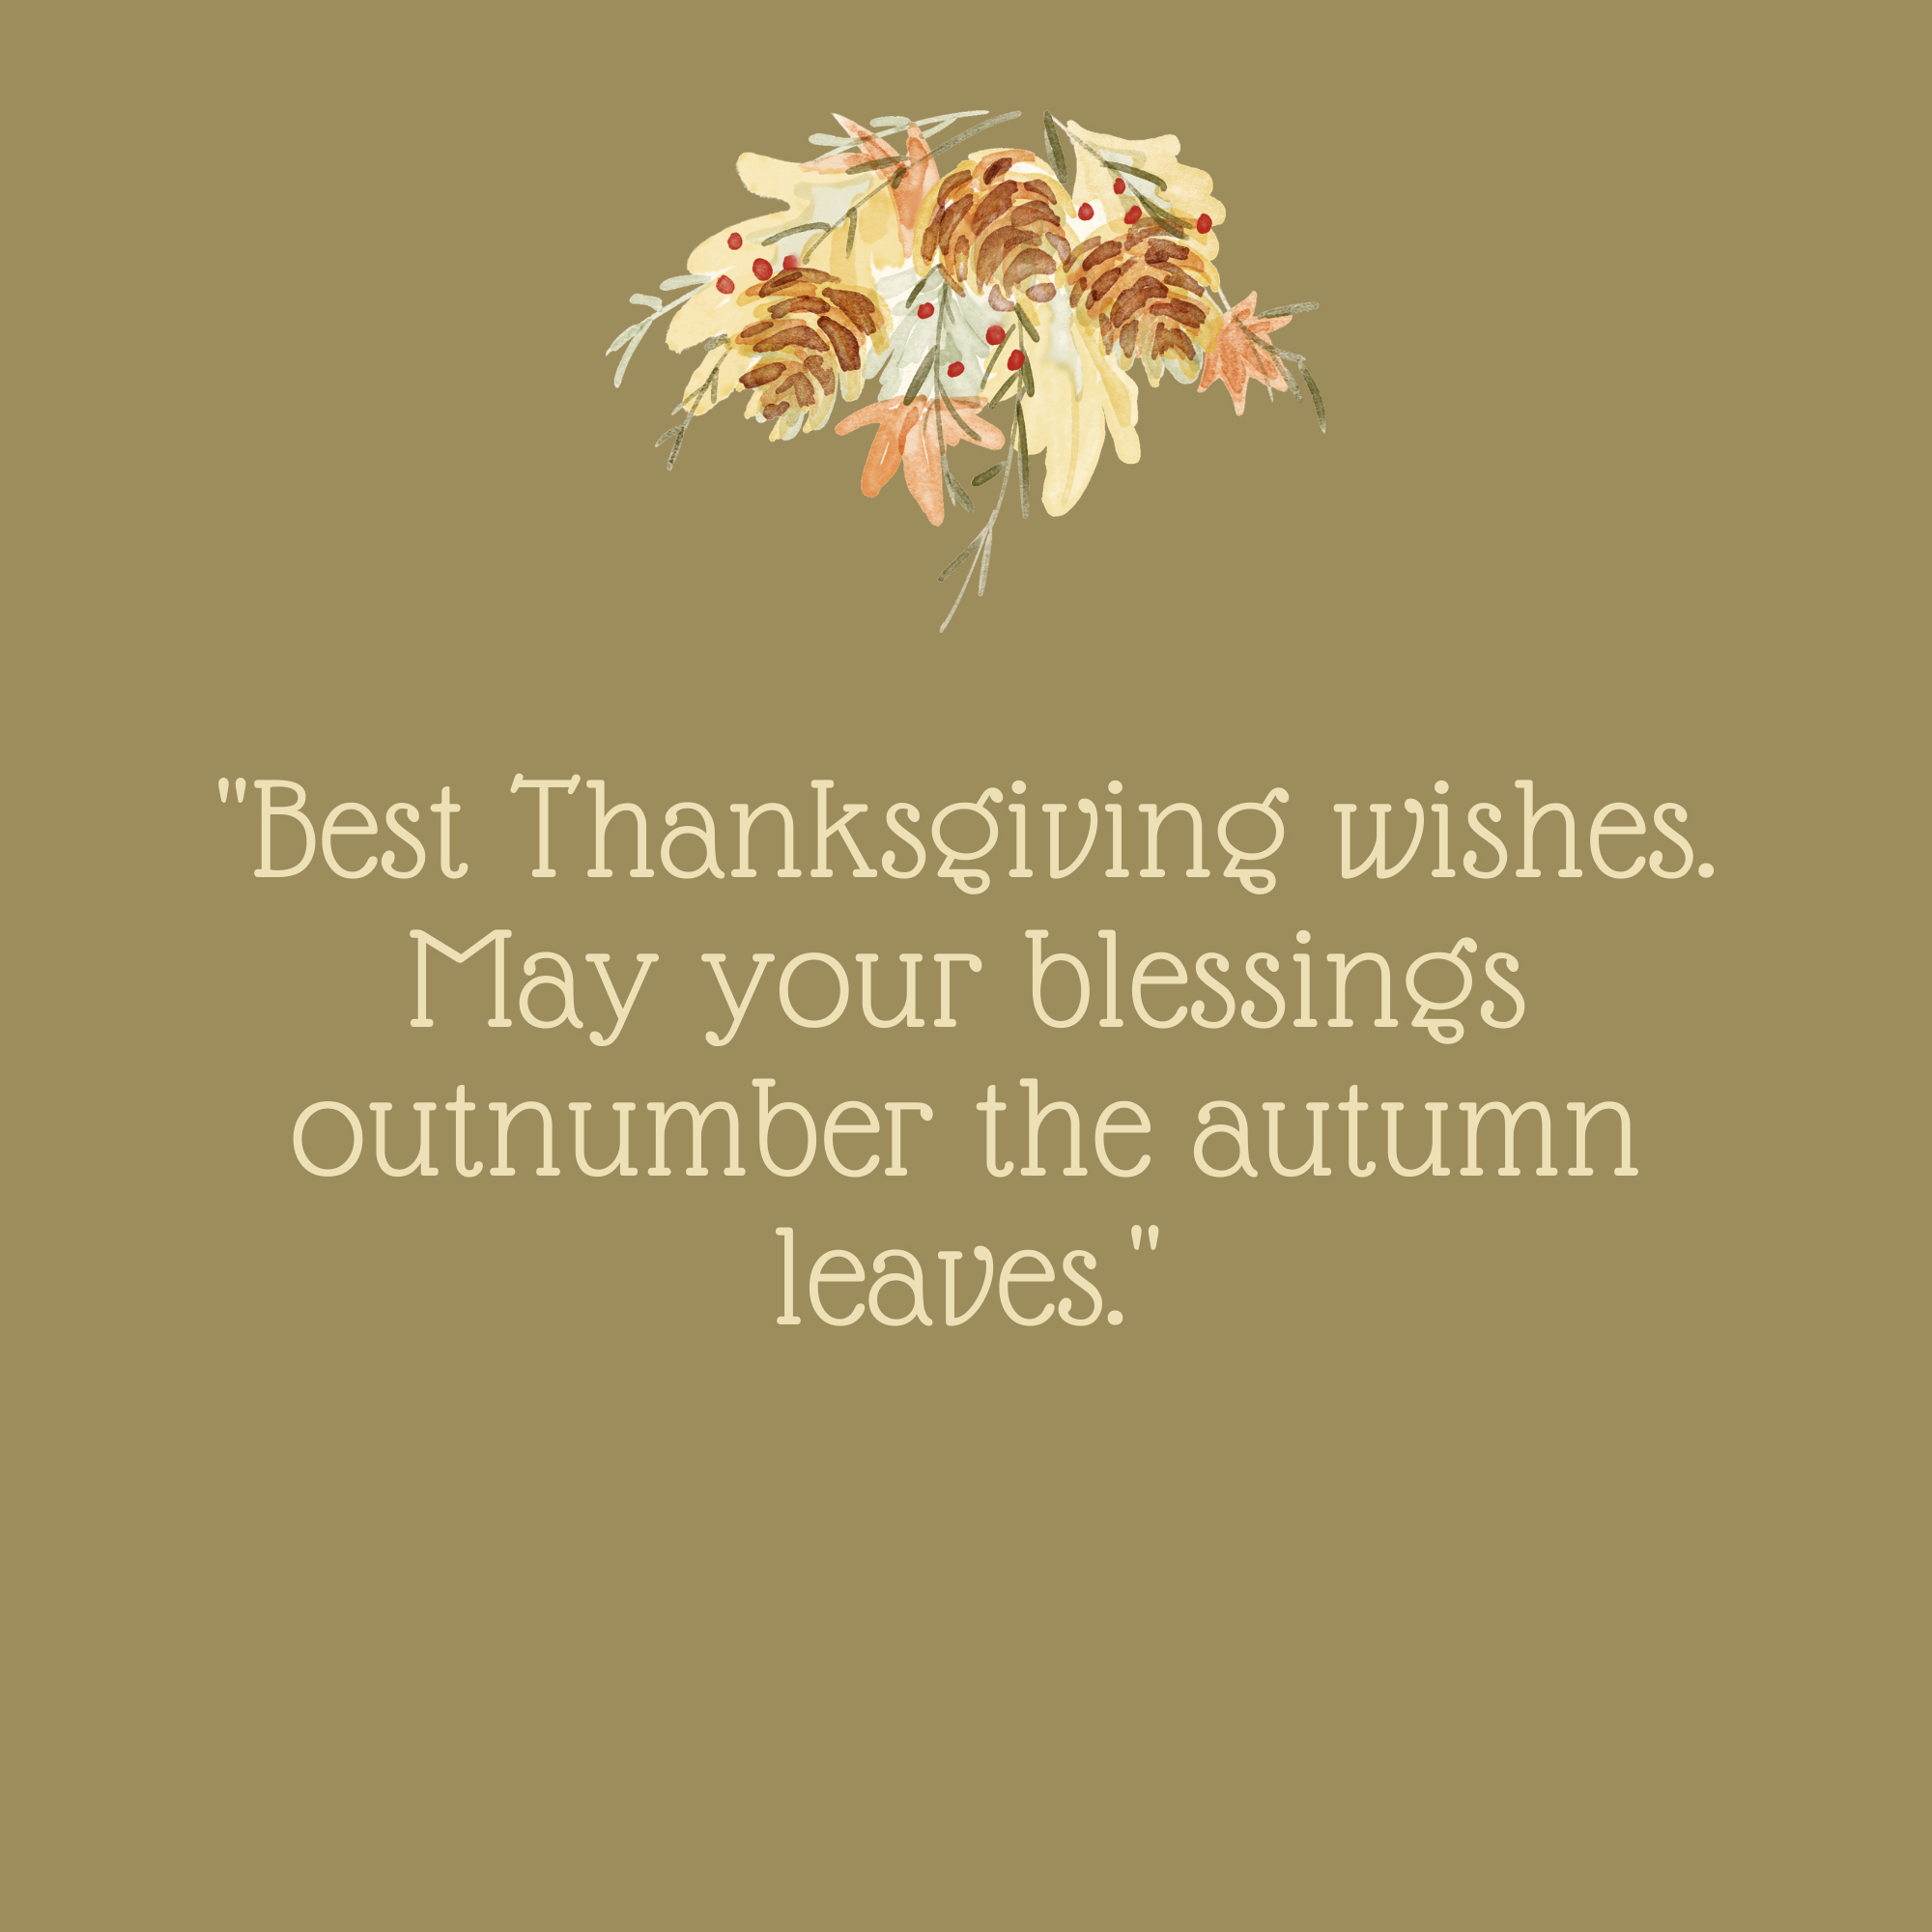 Best Thanksgiving Wishes Quote